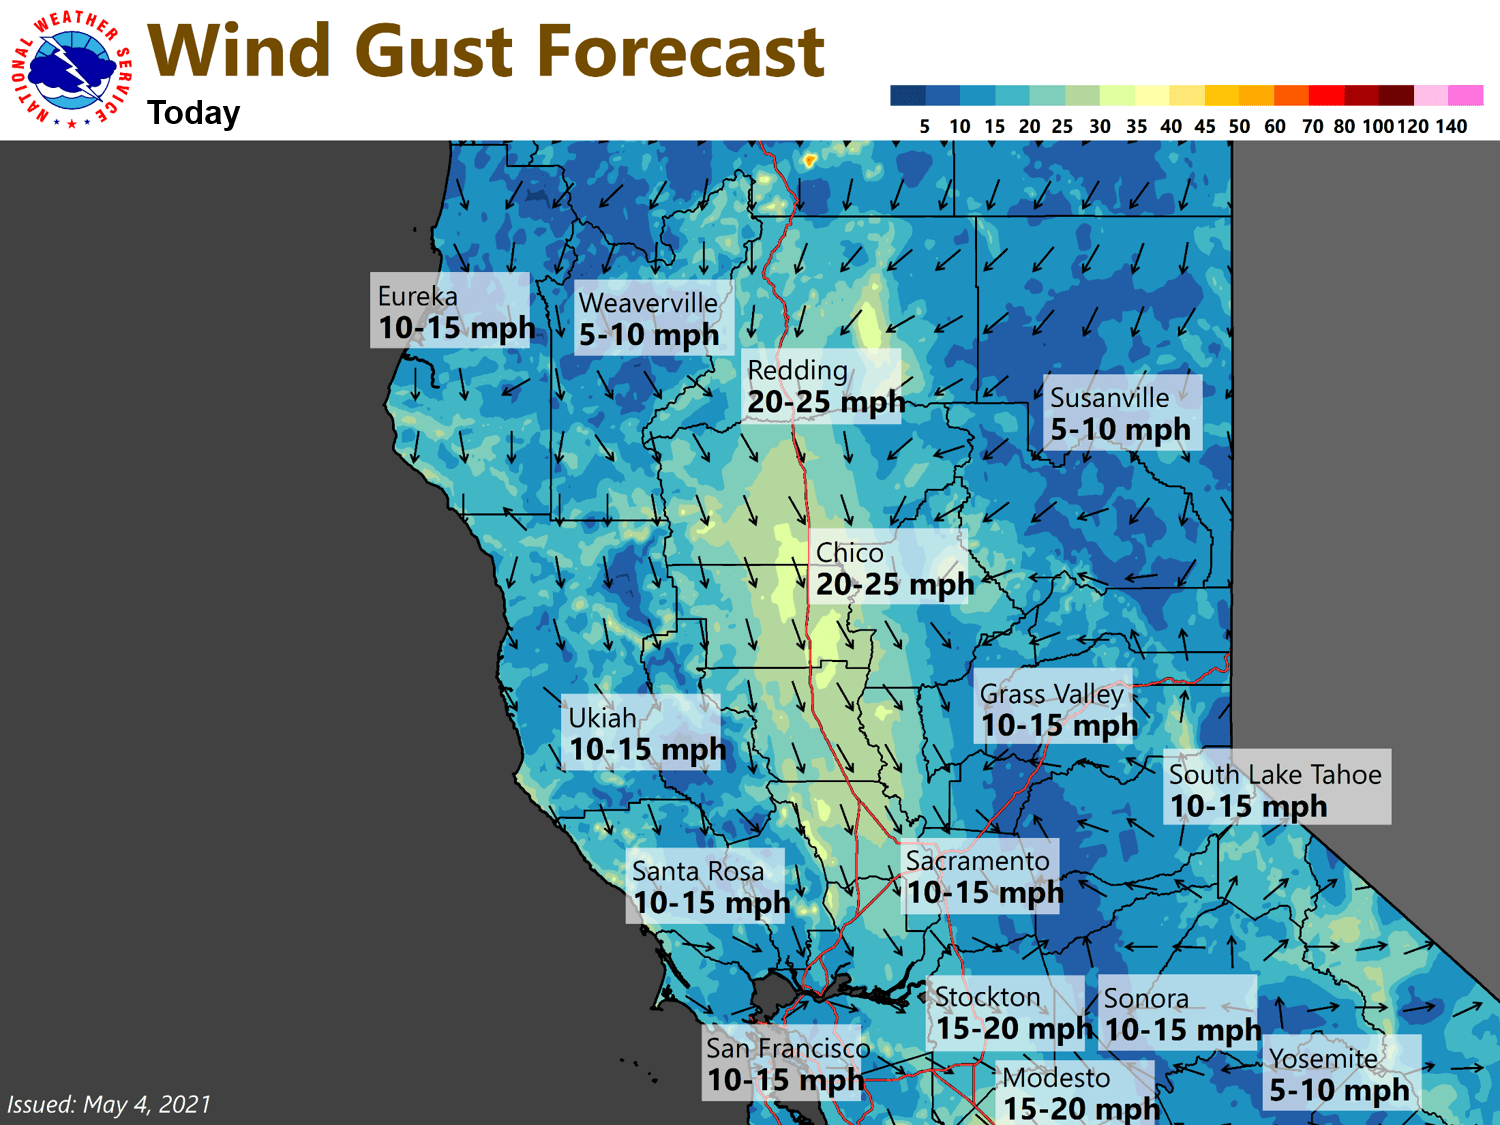 Wind gusts today